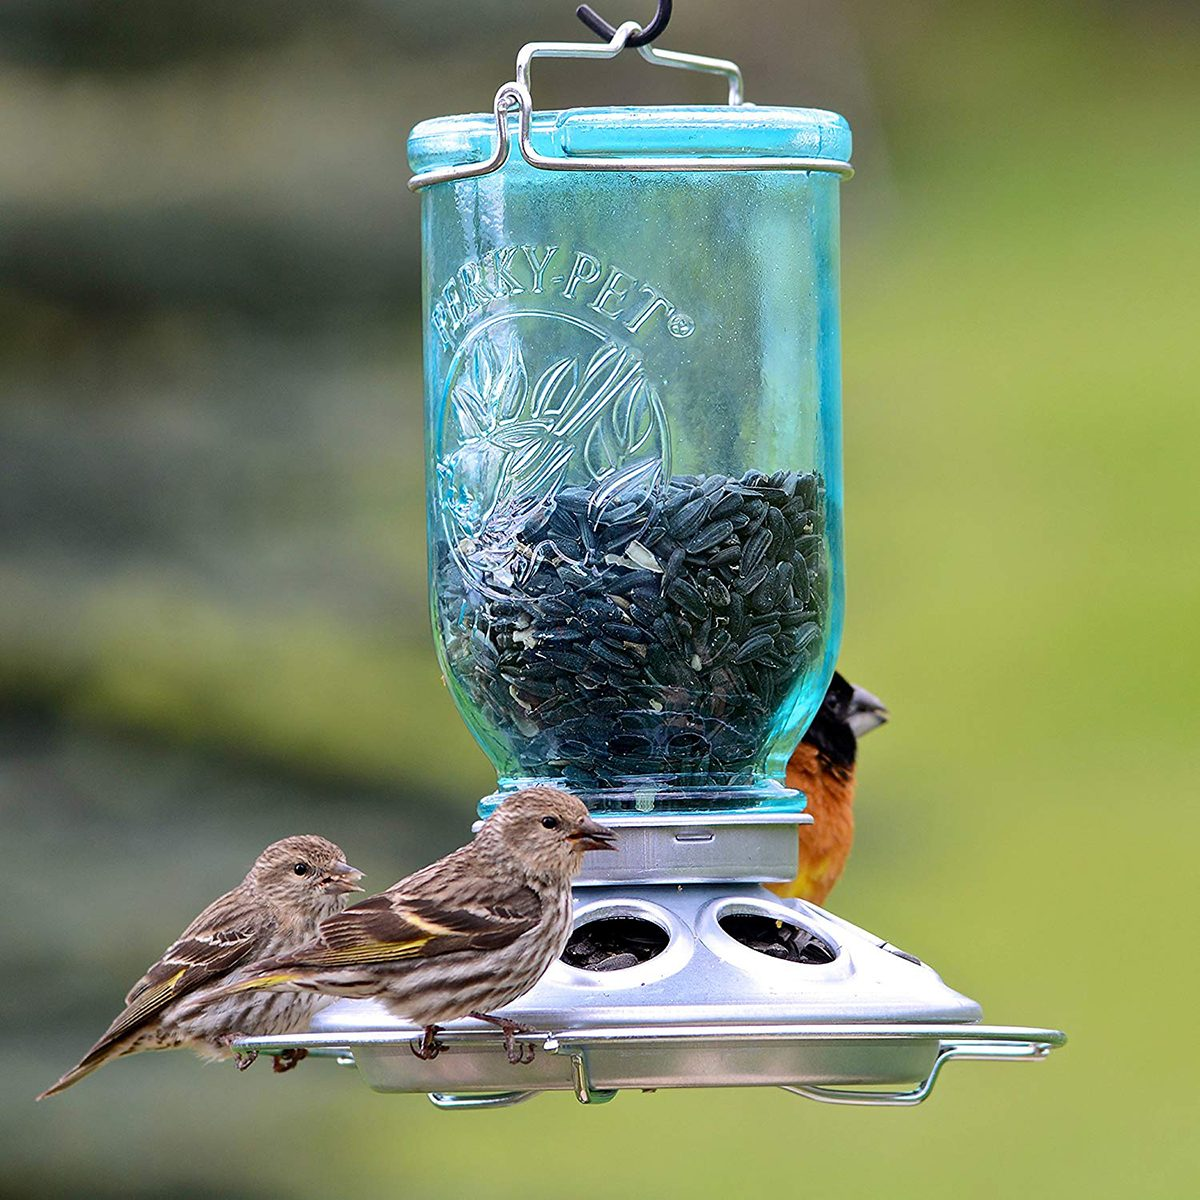 Uses for Mason jars - Mason jar bird feeder